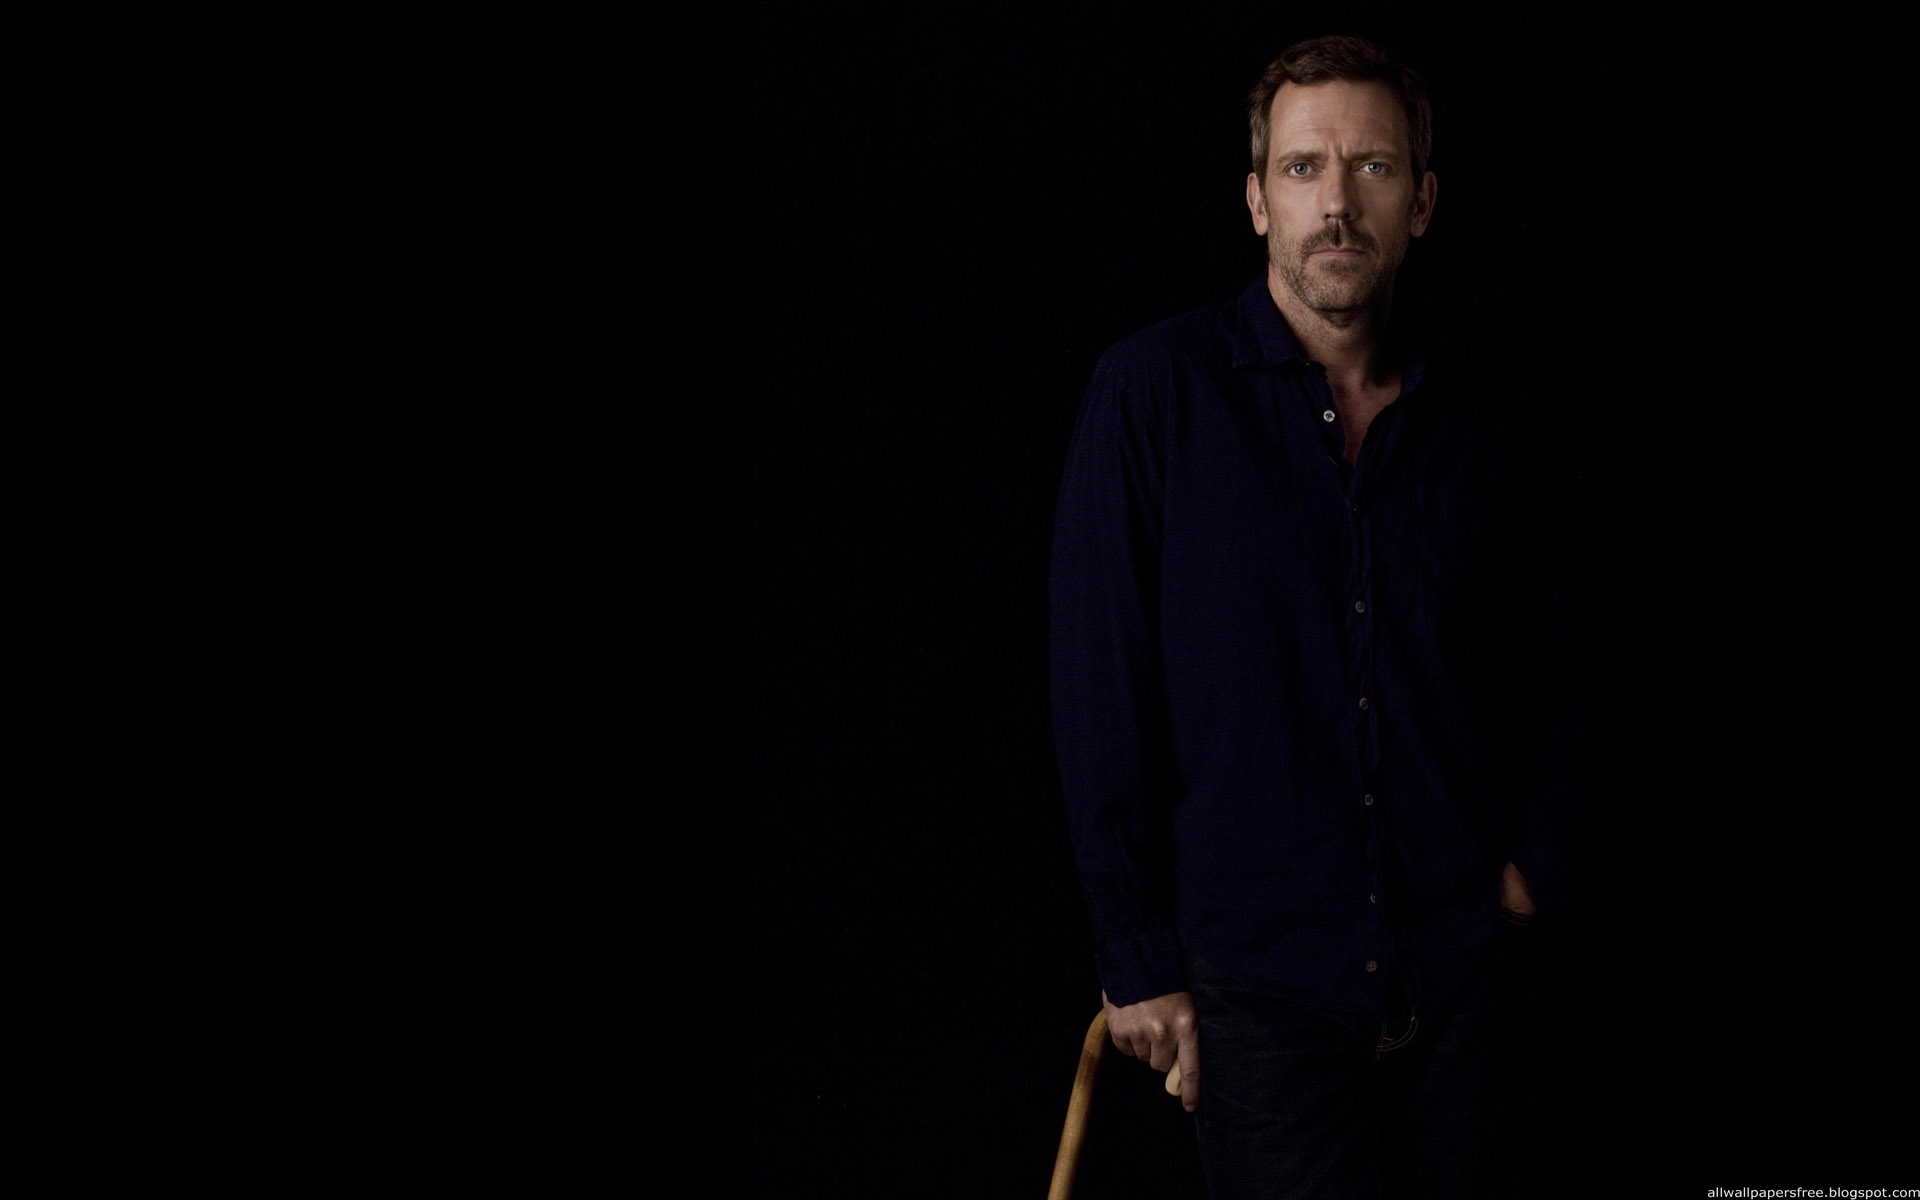 Dr Gregory House Wallpaper 1920x1200 1920x1200